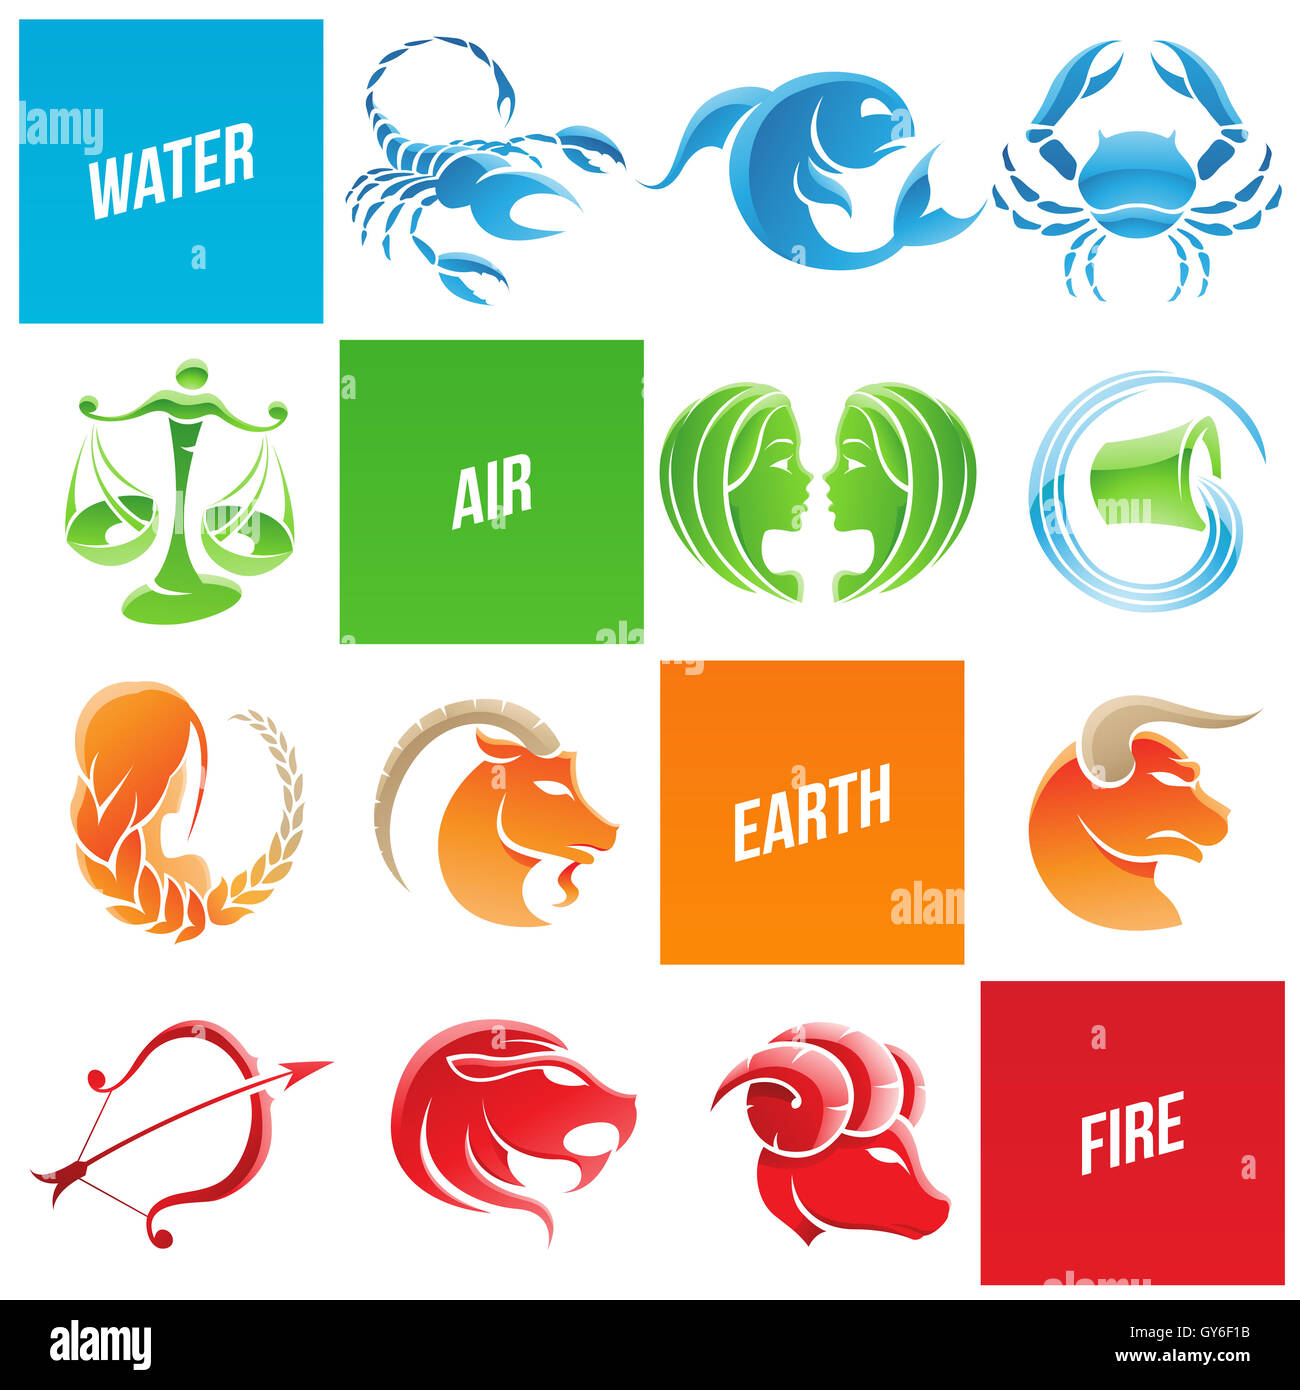 Vector Illustration of Colorful Zodiac Star Signs Stock Photo